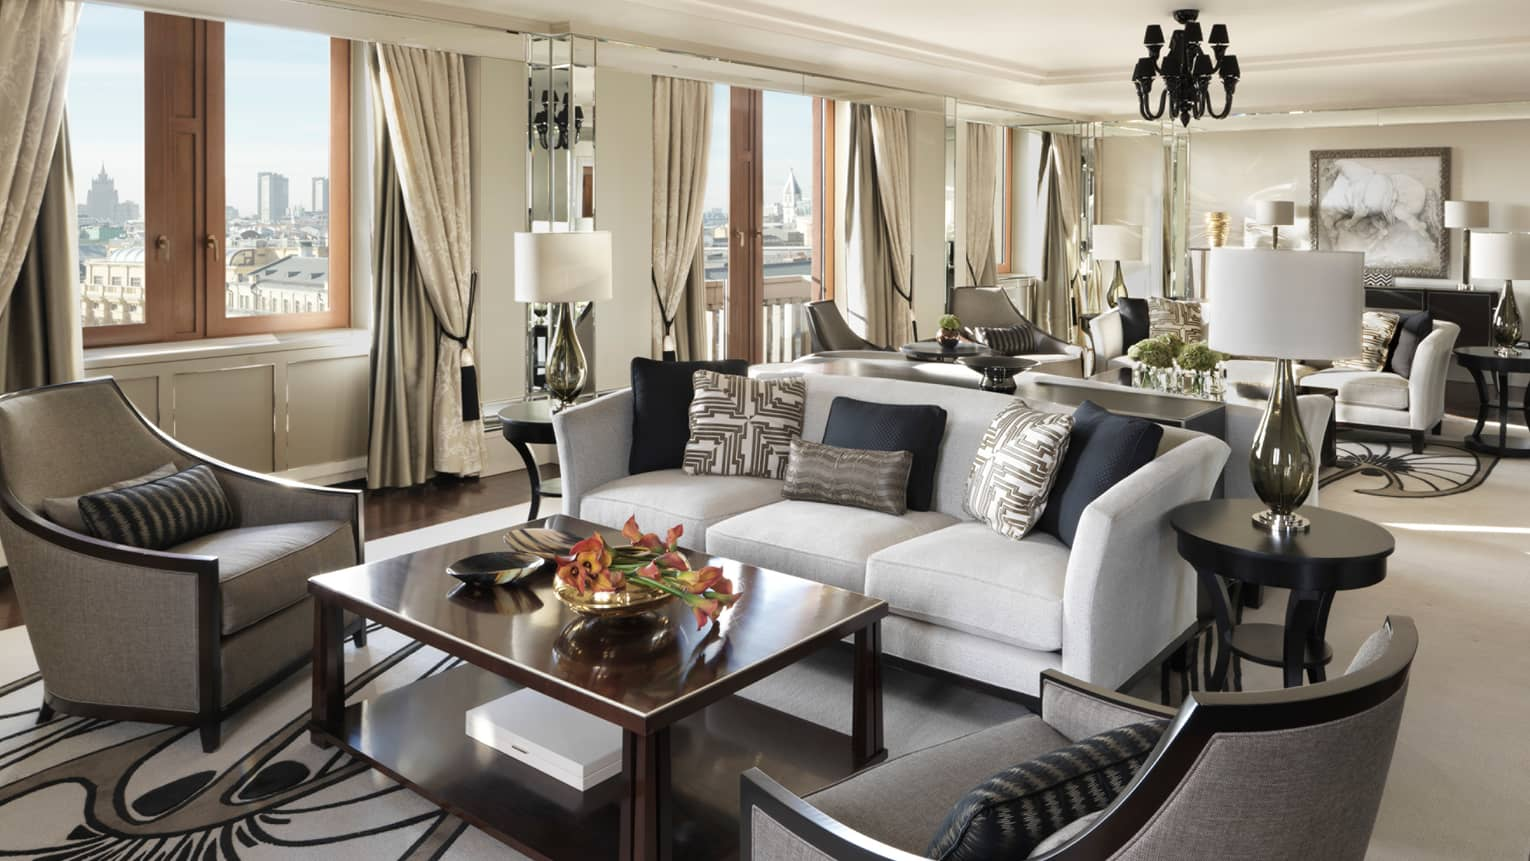 Pozharsky Royal Suite living area with white sofa, grey armchairs, private dining area in background